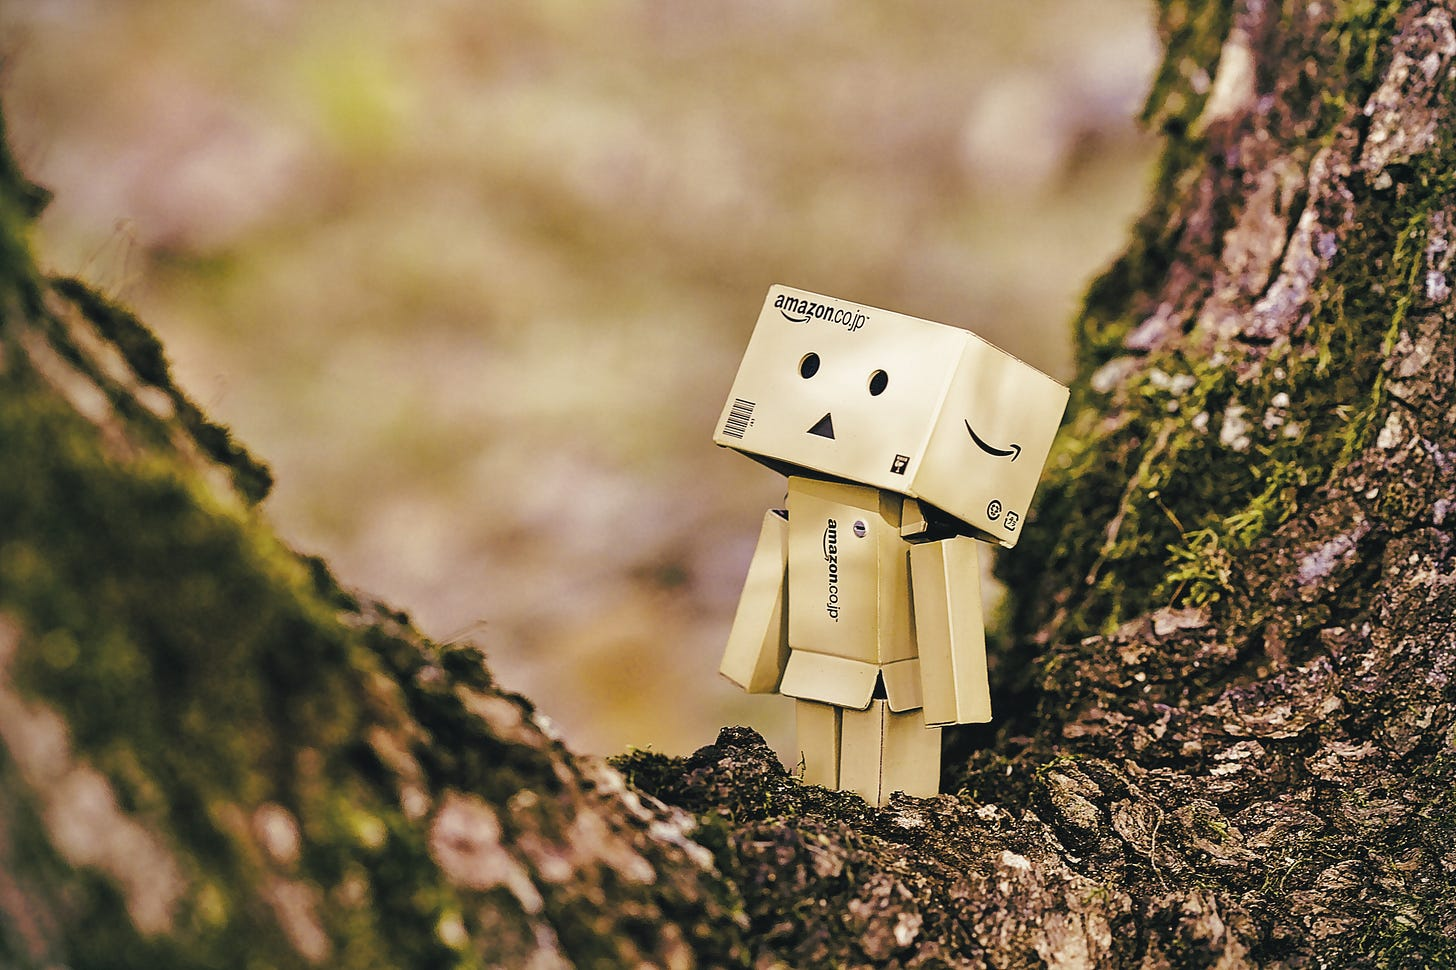 Picture of a figure made out of Amazon boxes, standing in the nook of a tree. Daniel Eledut / Unsplash